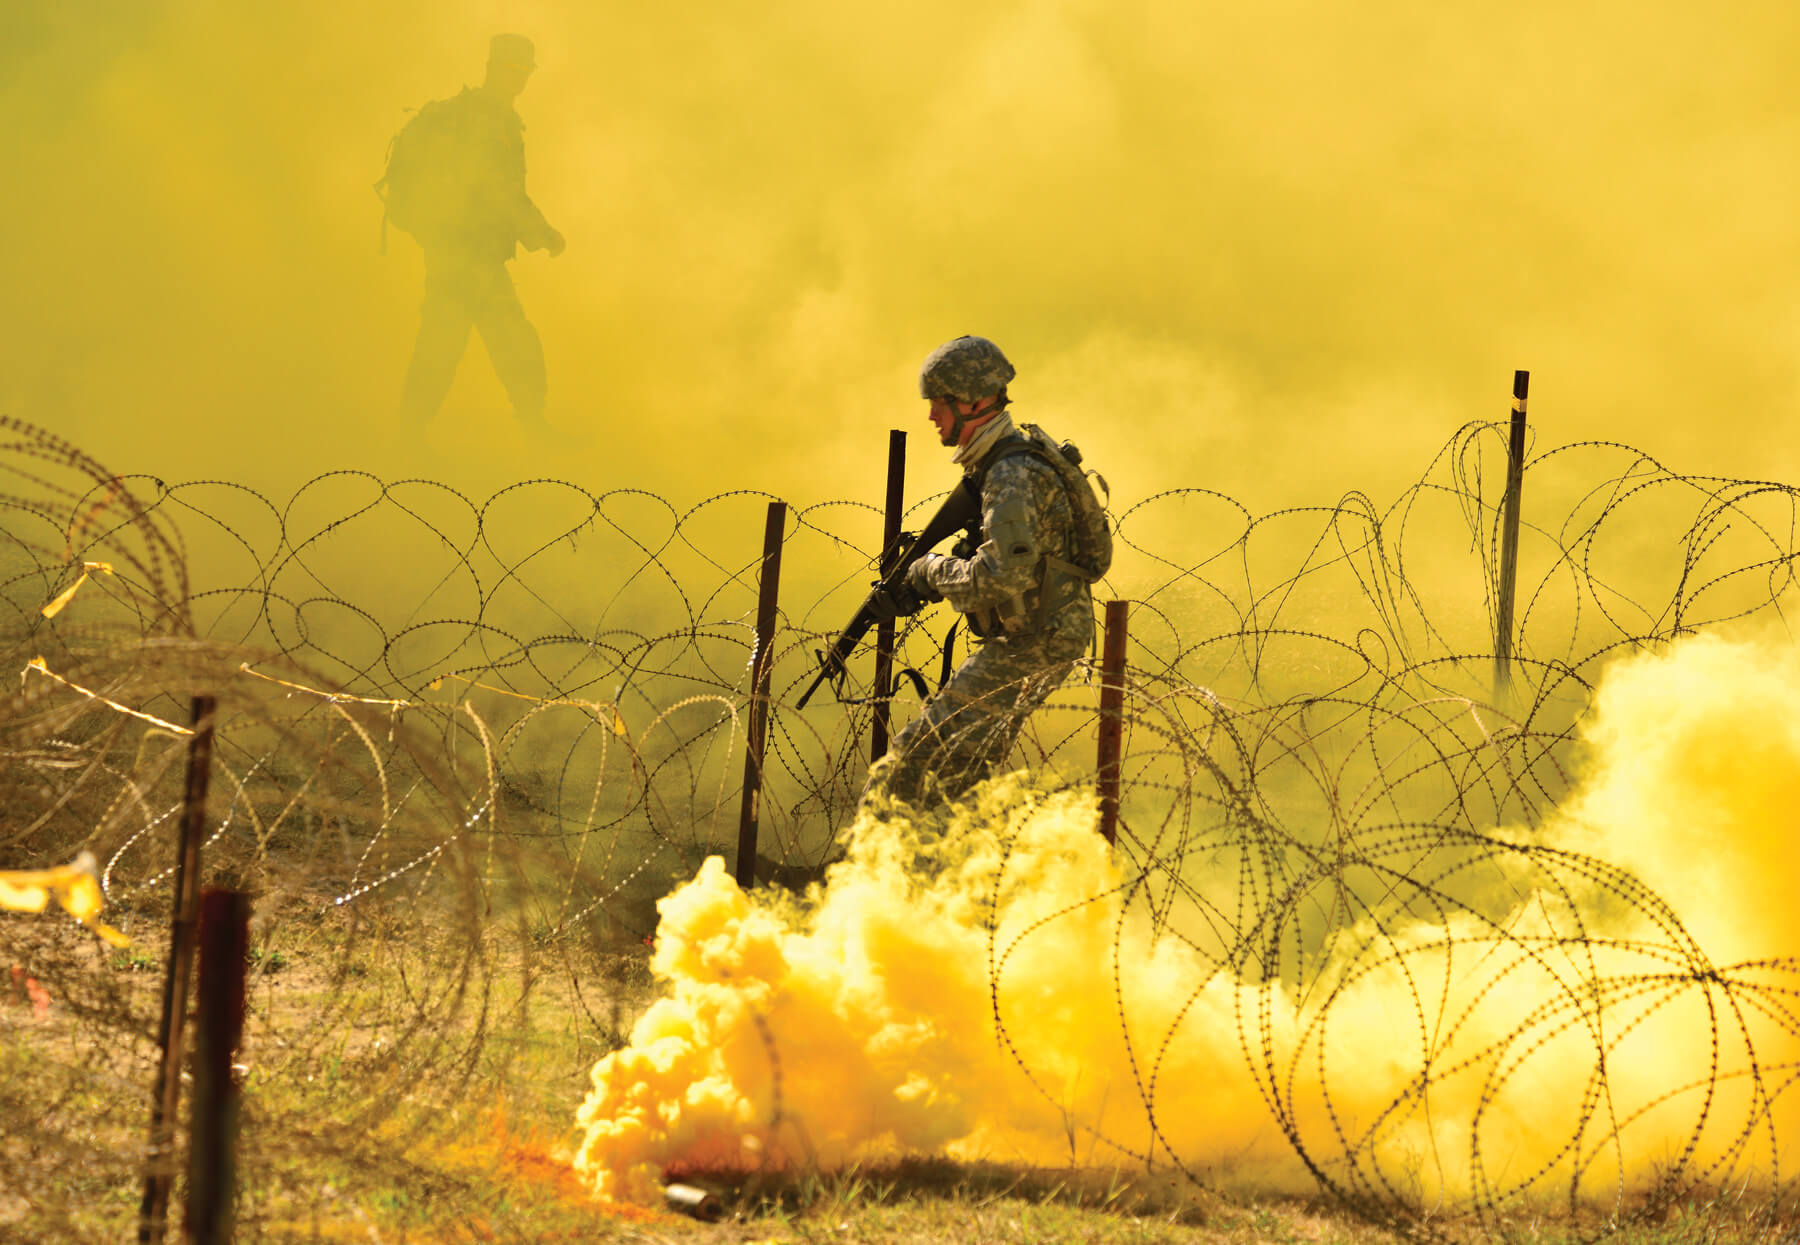 An Oregon Army National Guard Soldier proceeds through a combination of thick smoke, tear gas and razor wire as their unit mentor watches from above, during the 2017 Oregon Best Warrior Competition at Camp Rilea, near Warrenton, Ore. Soldiers compete in a variety of warrior tasks to determine which Soldier and NCO will represent Oregon at the regional-level competition.